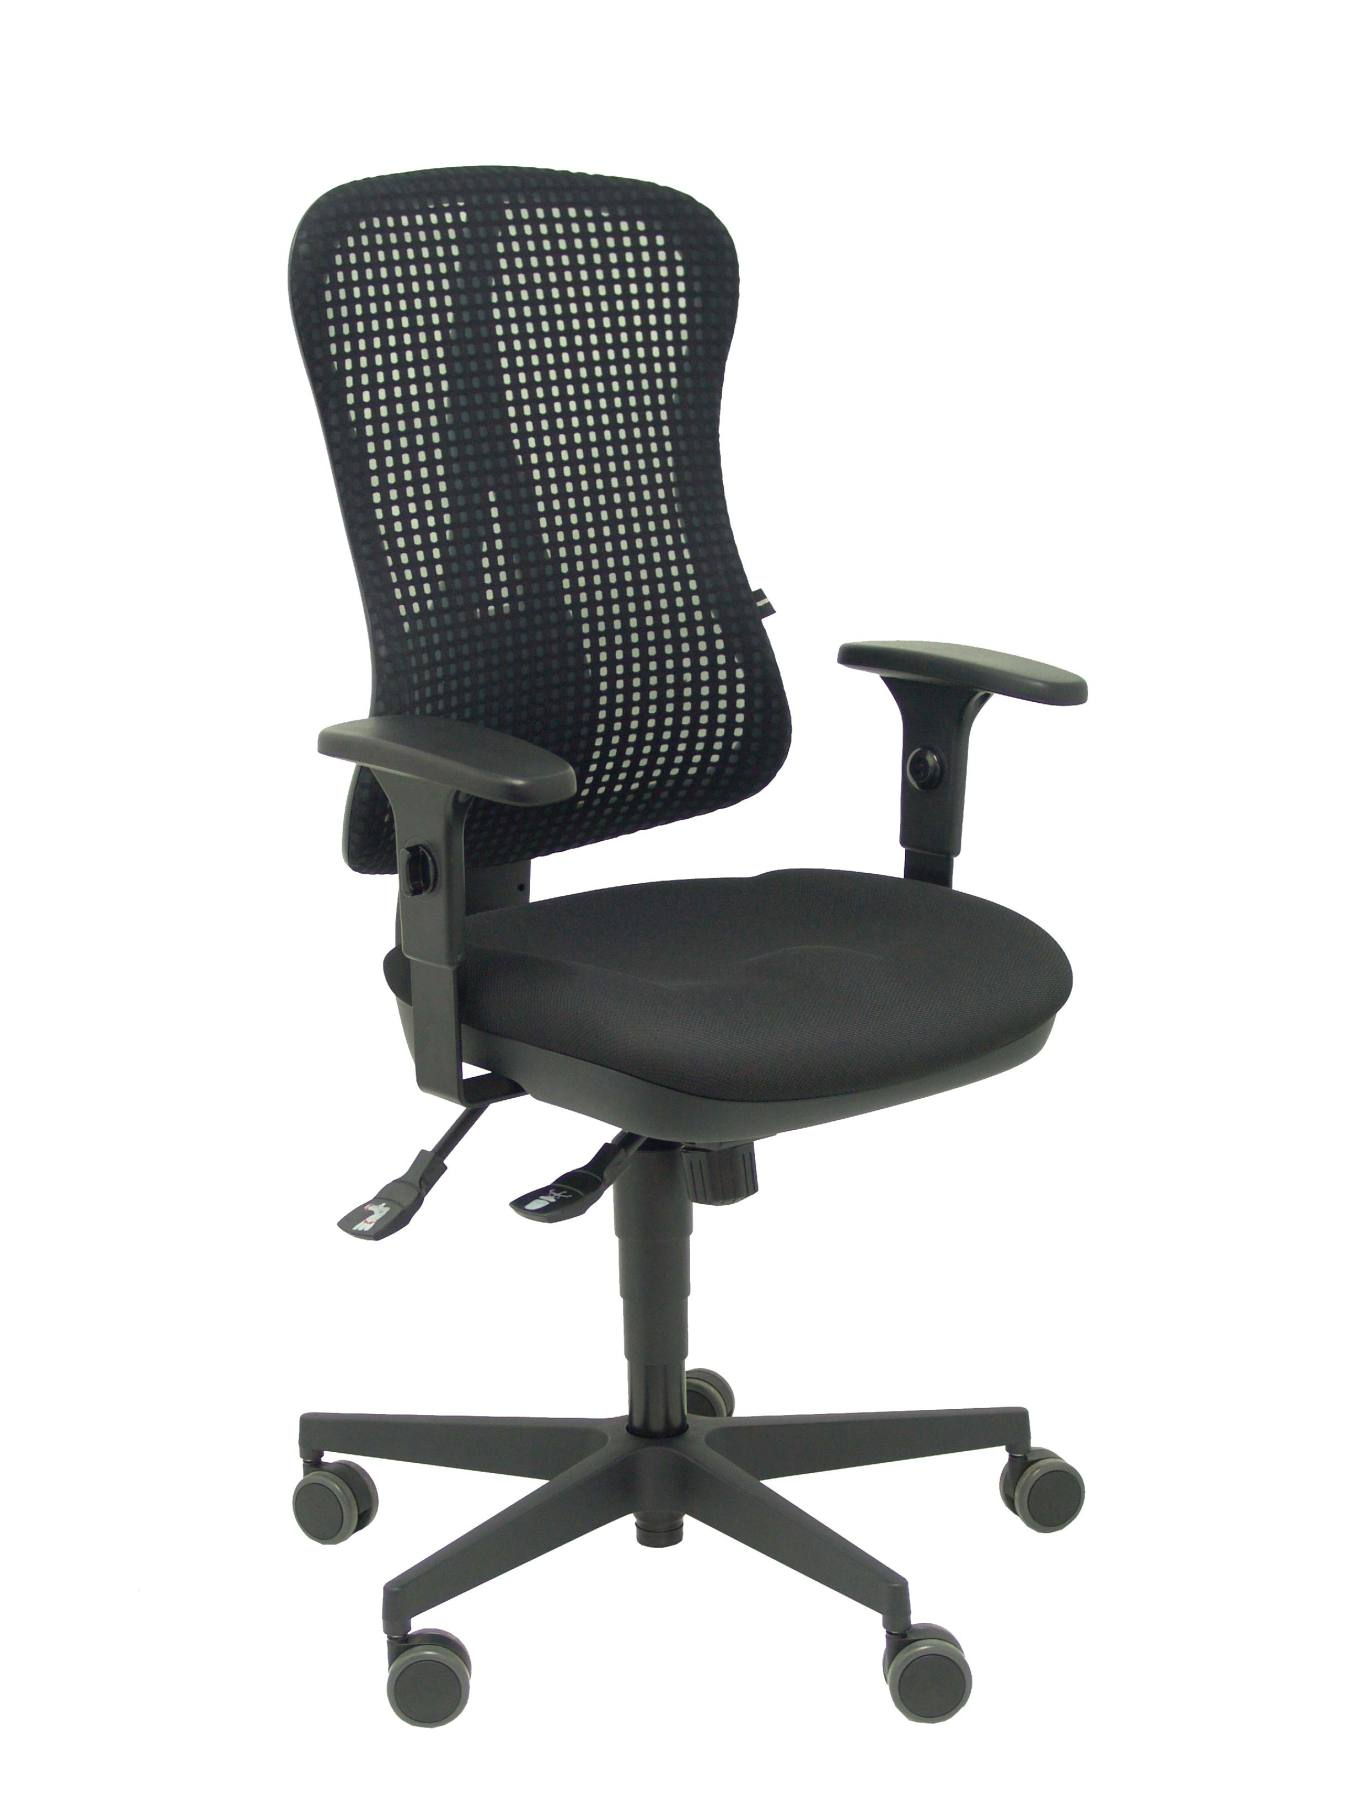 Ergonomic Office Chair With Mechanism Synchro, Arms Adjustable-breathable Mesh Backrest In Black Color And